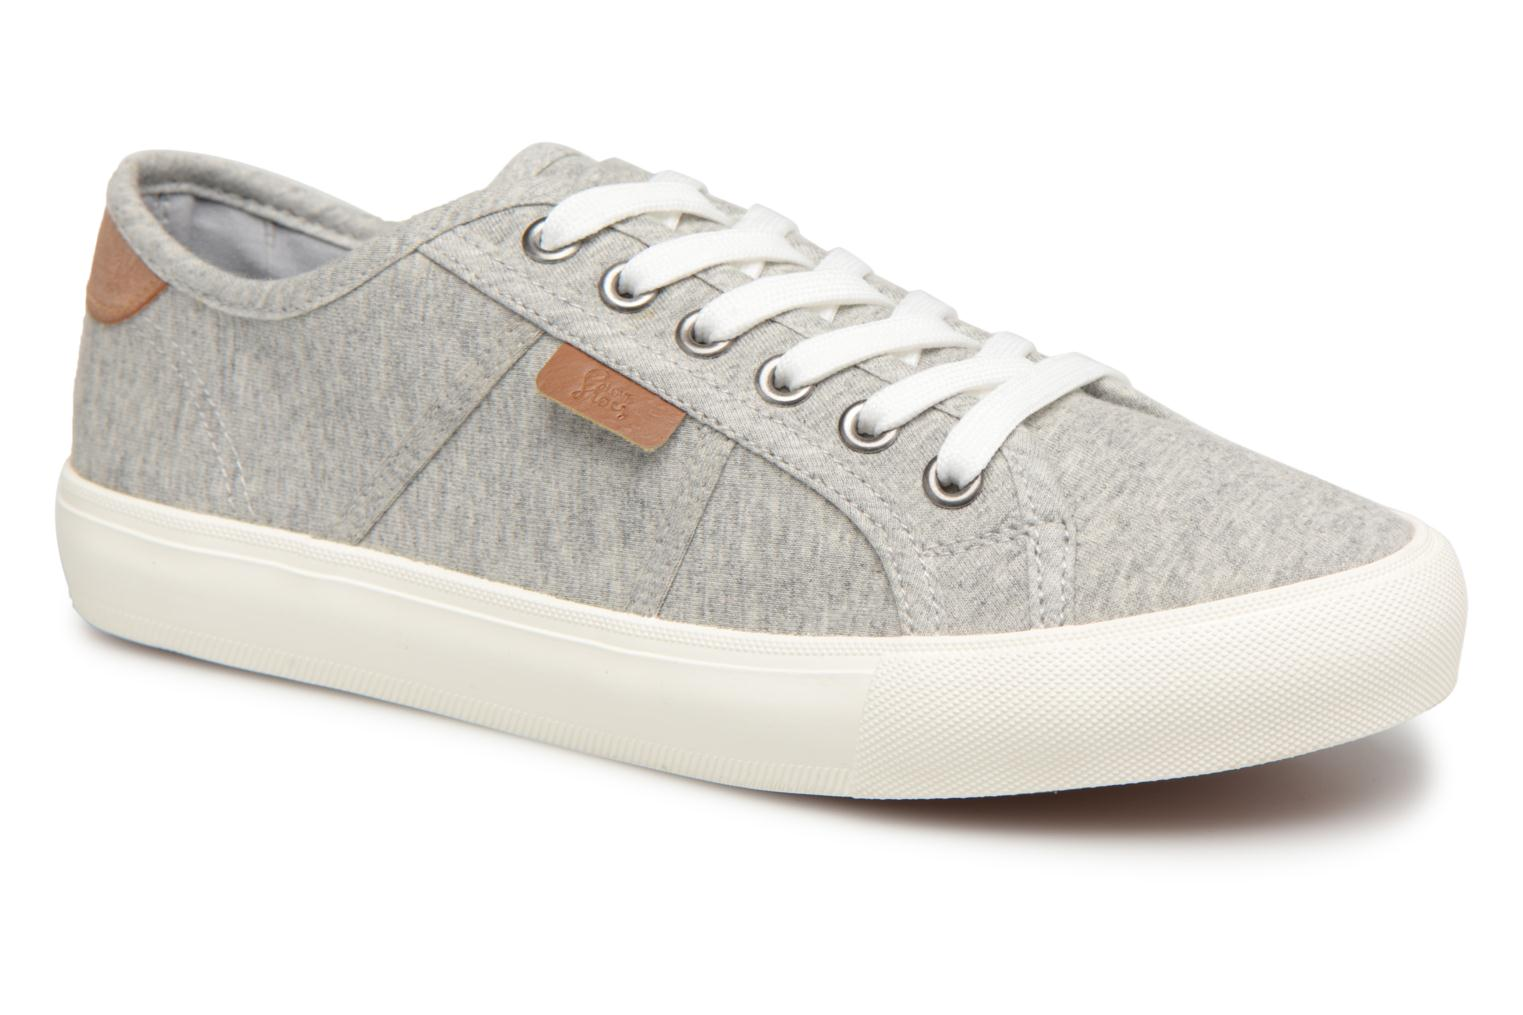 I Love Shoes - Damen - Supalina - Sneaker - grau vxg9o